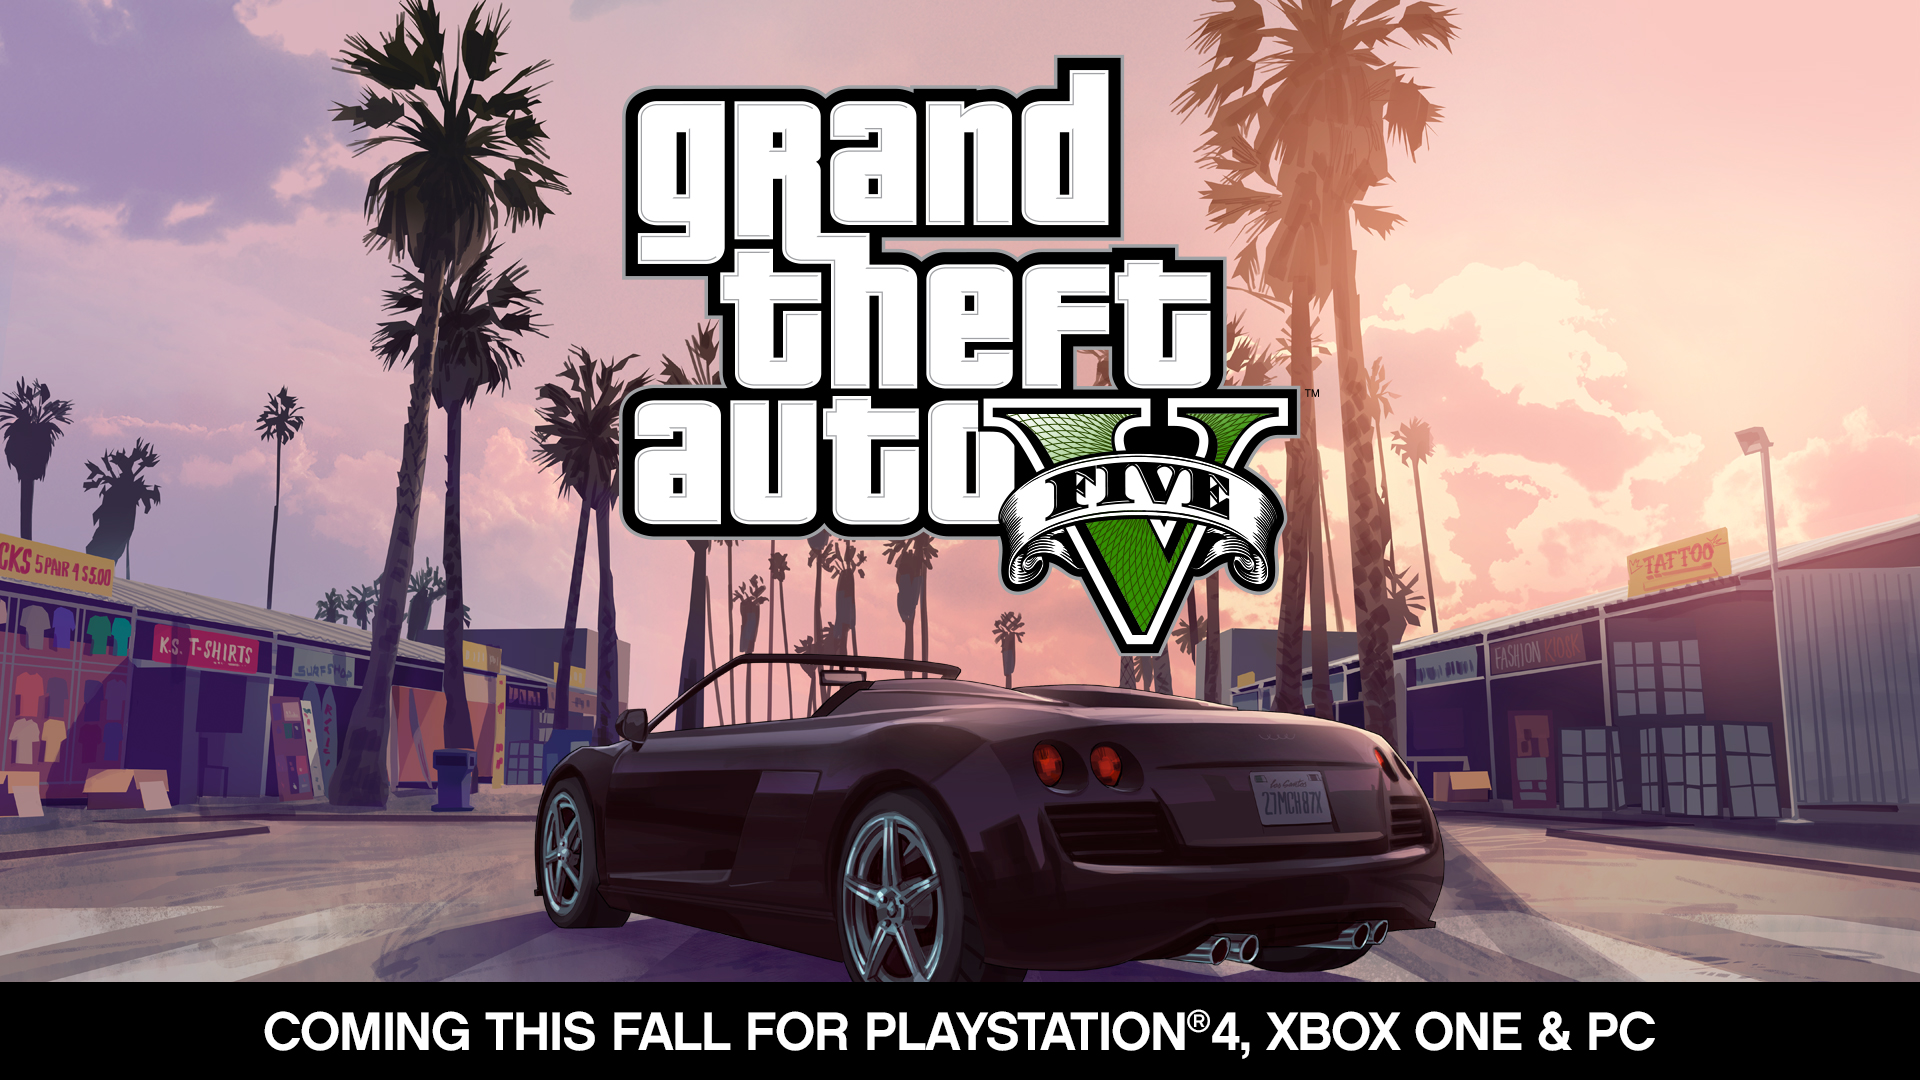 grand theft auto v coming this fall to playstation 4 xbox one and pc rockstar games. Black Bedroom Furniture Sets. Home Design Ideas